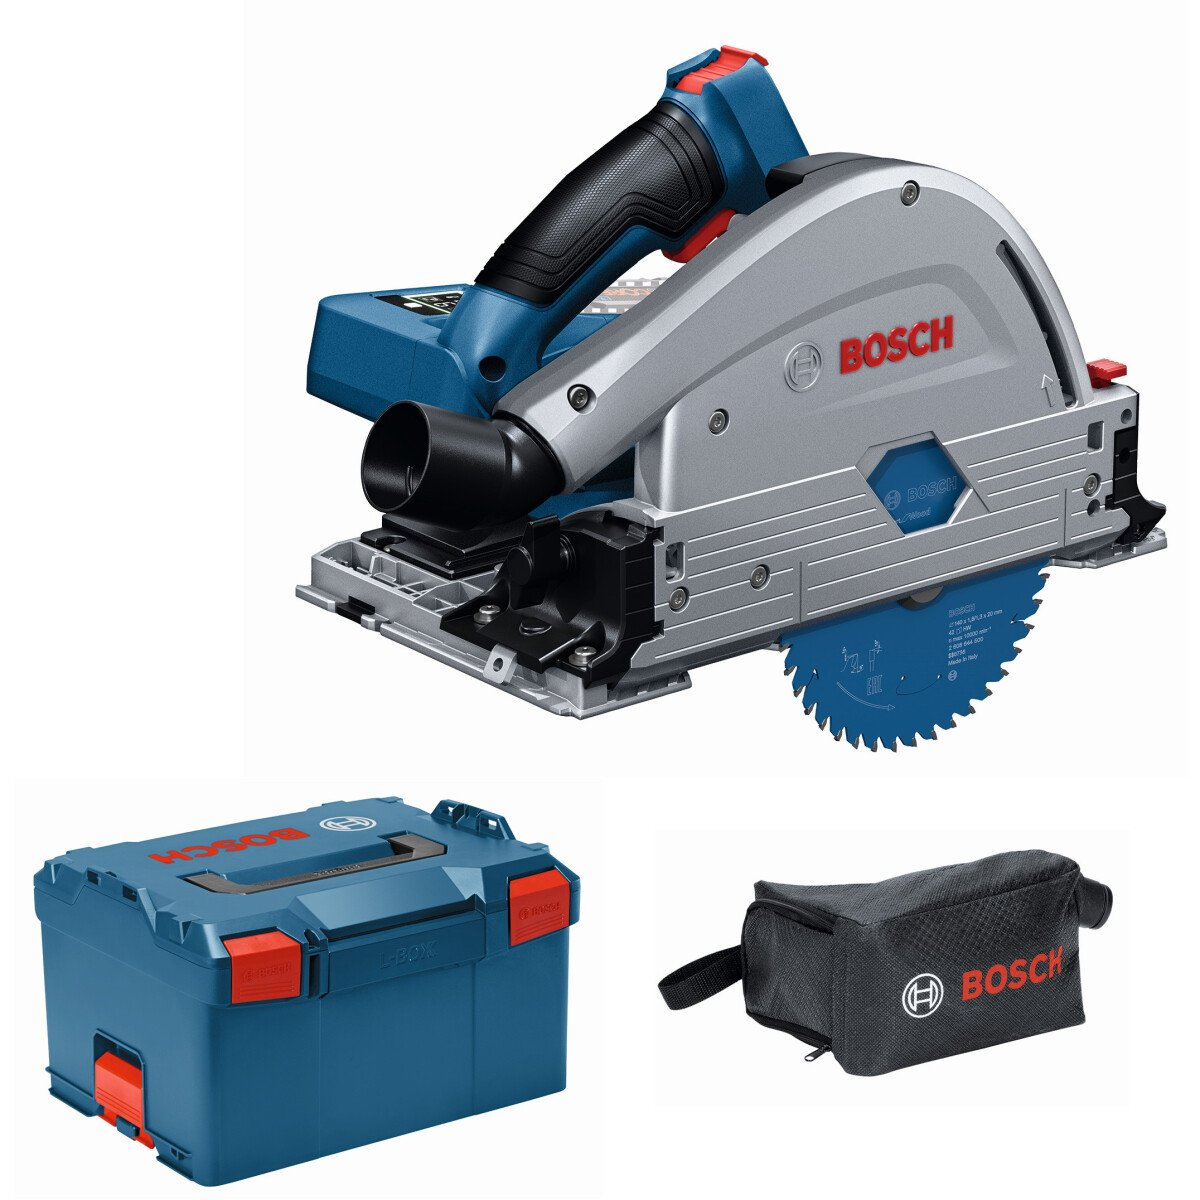 Bosch GKT 18V-52 GCNCG 18v Body Only BITURBO BRUSHLESS Guide Rail Compatible Plunge Saw Connected in L-Boxx